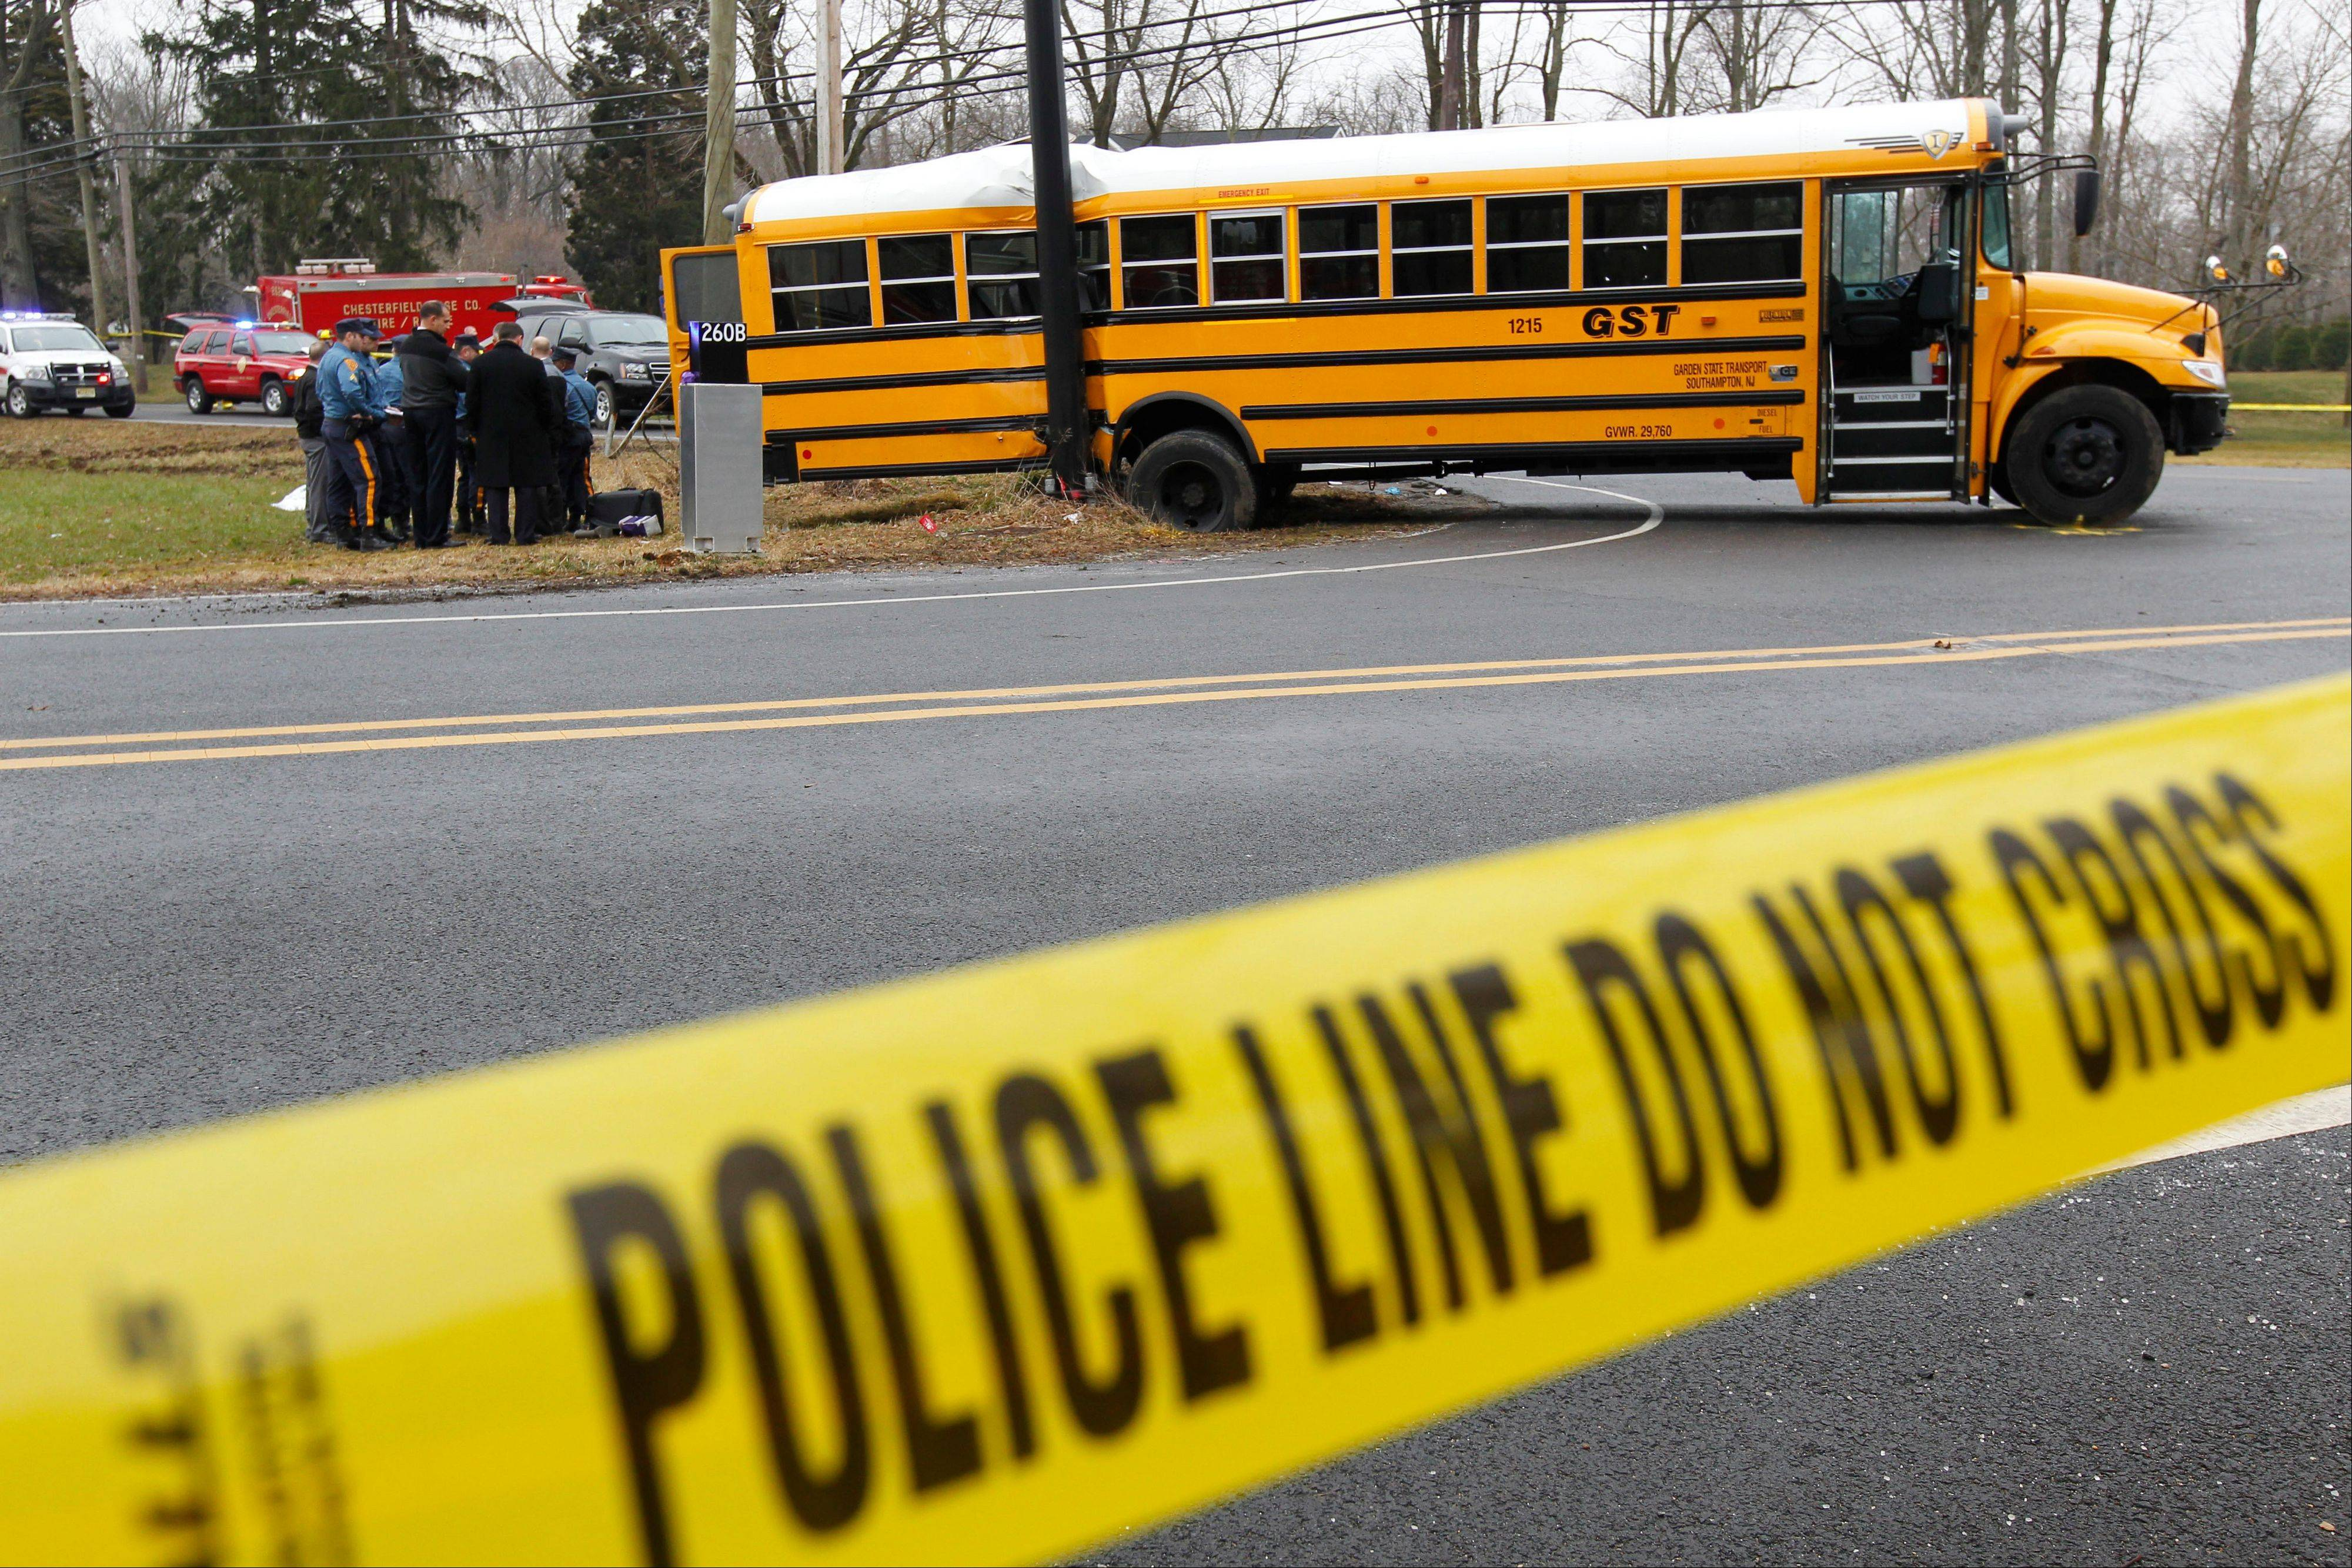 Investigators viewing the scene of a school bus crash in Chesterfield, N.J. Federal investigators are expected to make new school bus safety recommendations based on fatal accidents in New Jersey and Florida last year.